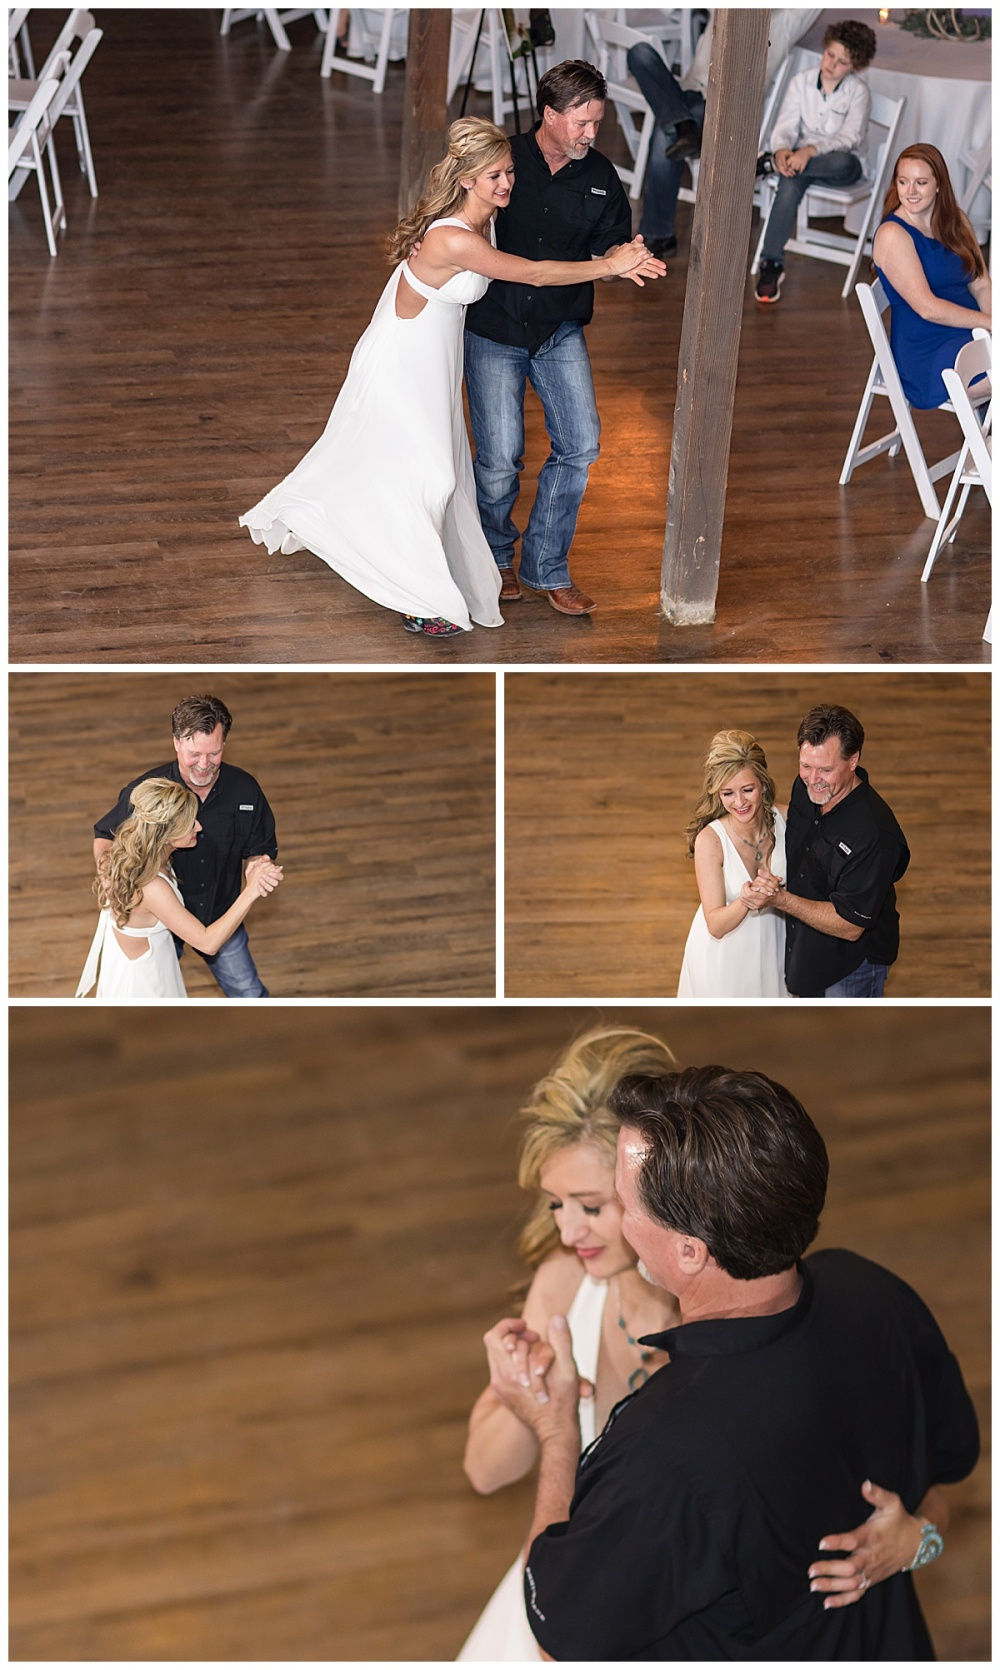 Eagle-Dancer-Ranch-Boerne-Texas-Wedding-Party-Barn-Carly-Barton-Photography_0066.jpg